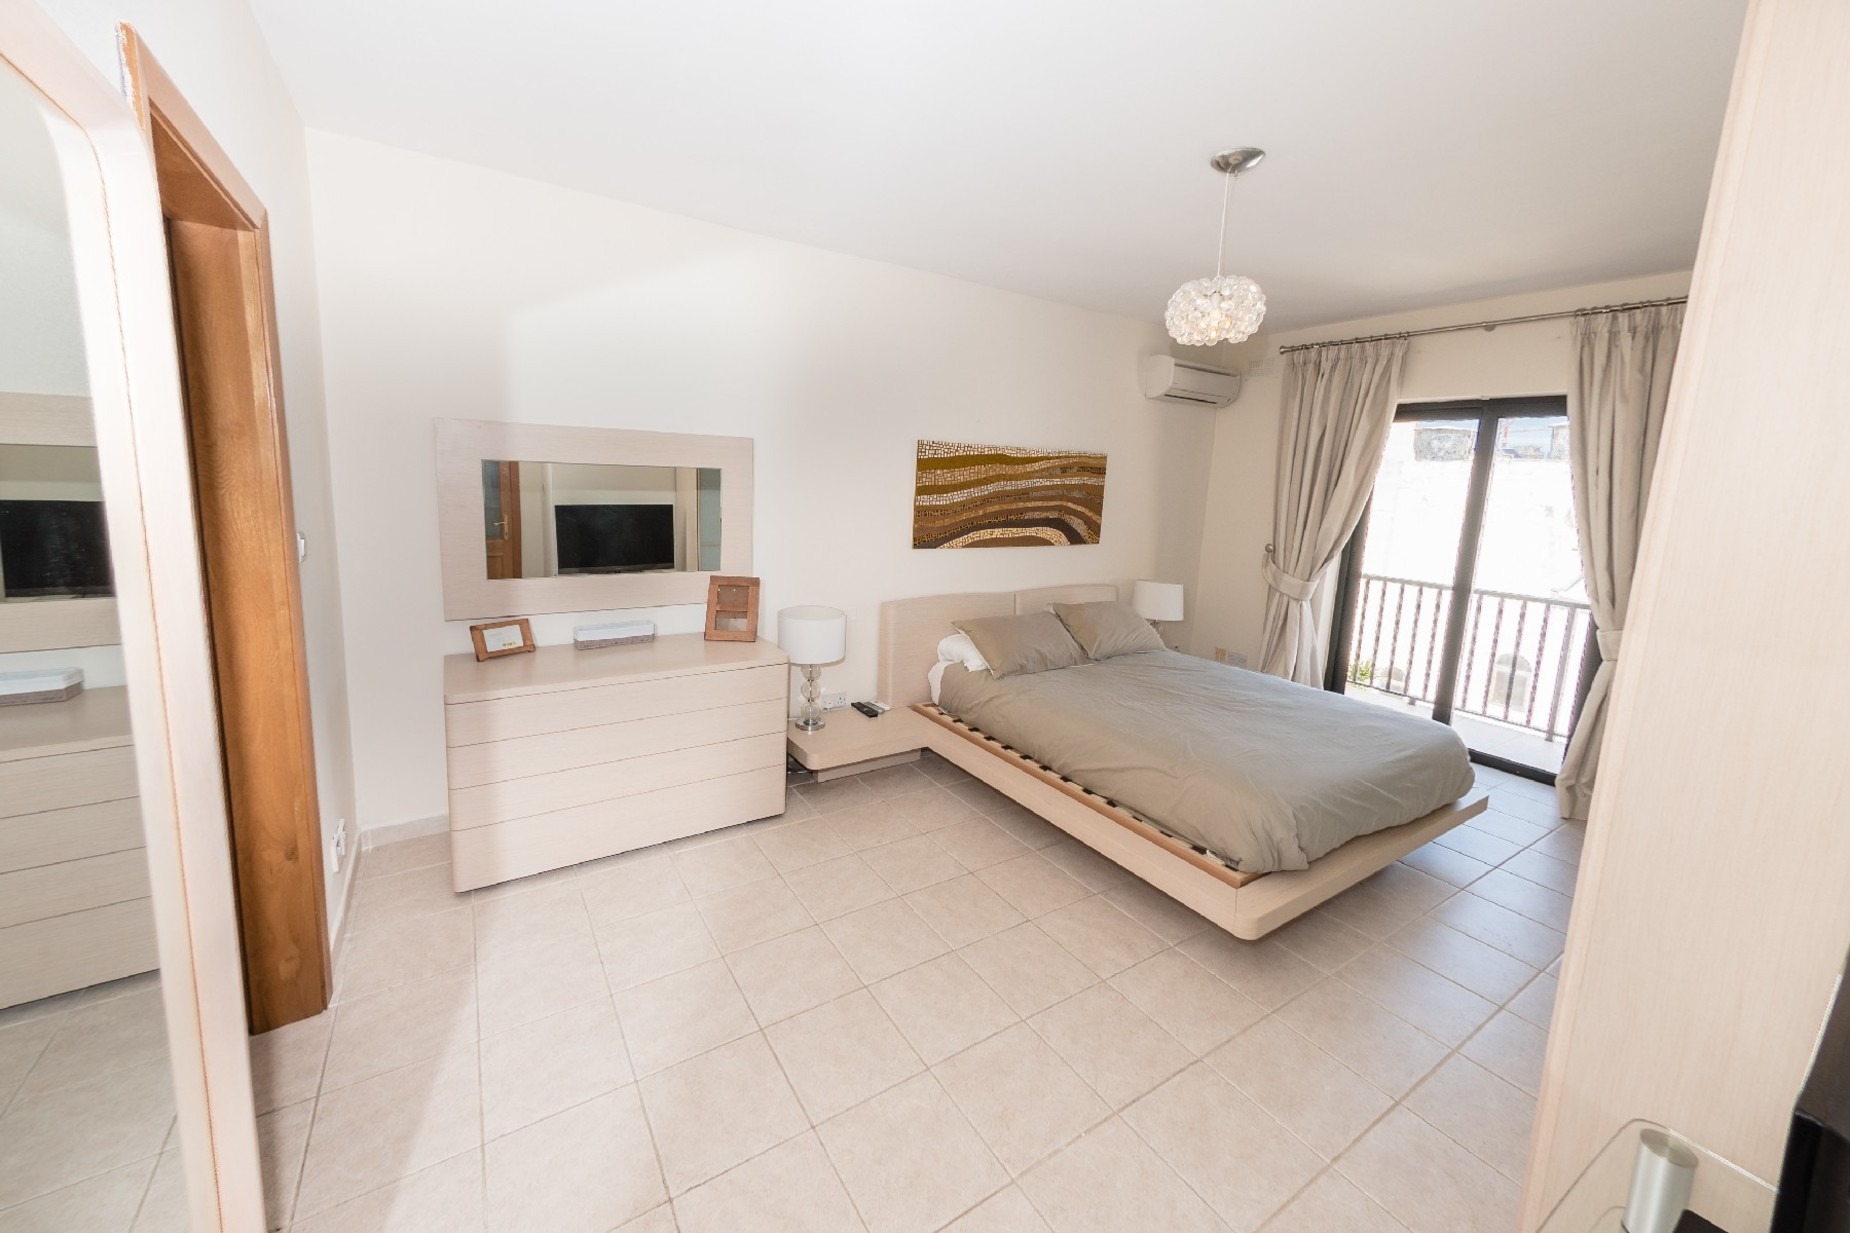 3 bed Apartment For Rent in Swieqi, Swieqi - thumb 12